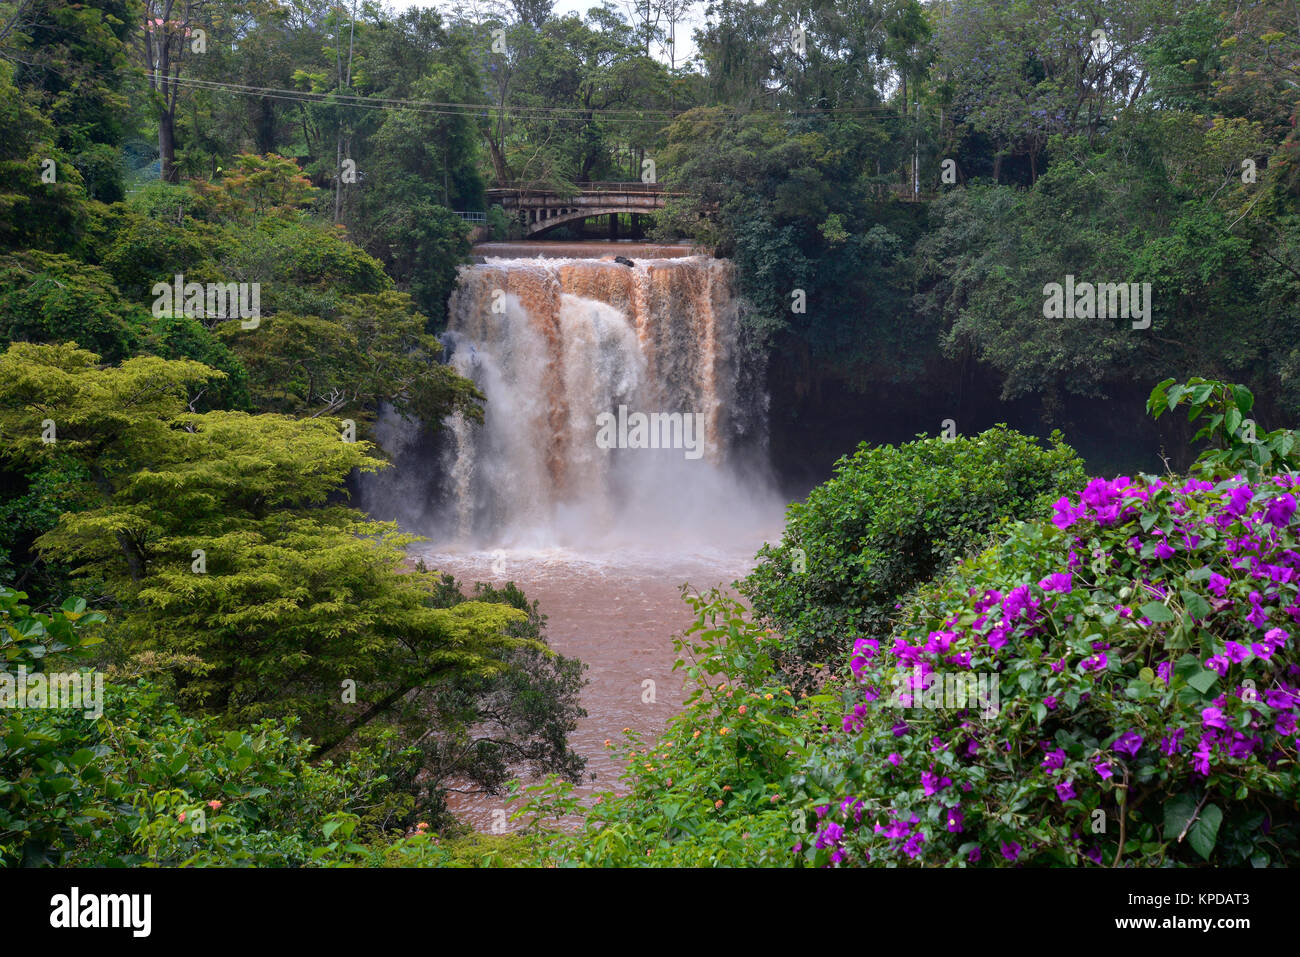 Kenya is a prime tourist destination in East Africa. Famous for wildlife and natural beauty. Chania Falls near Thika. - Stock Image